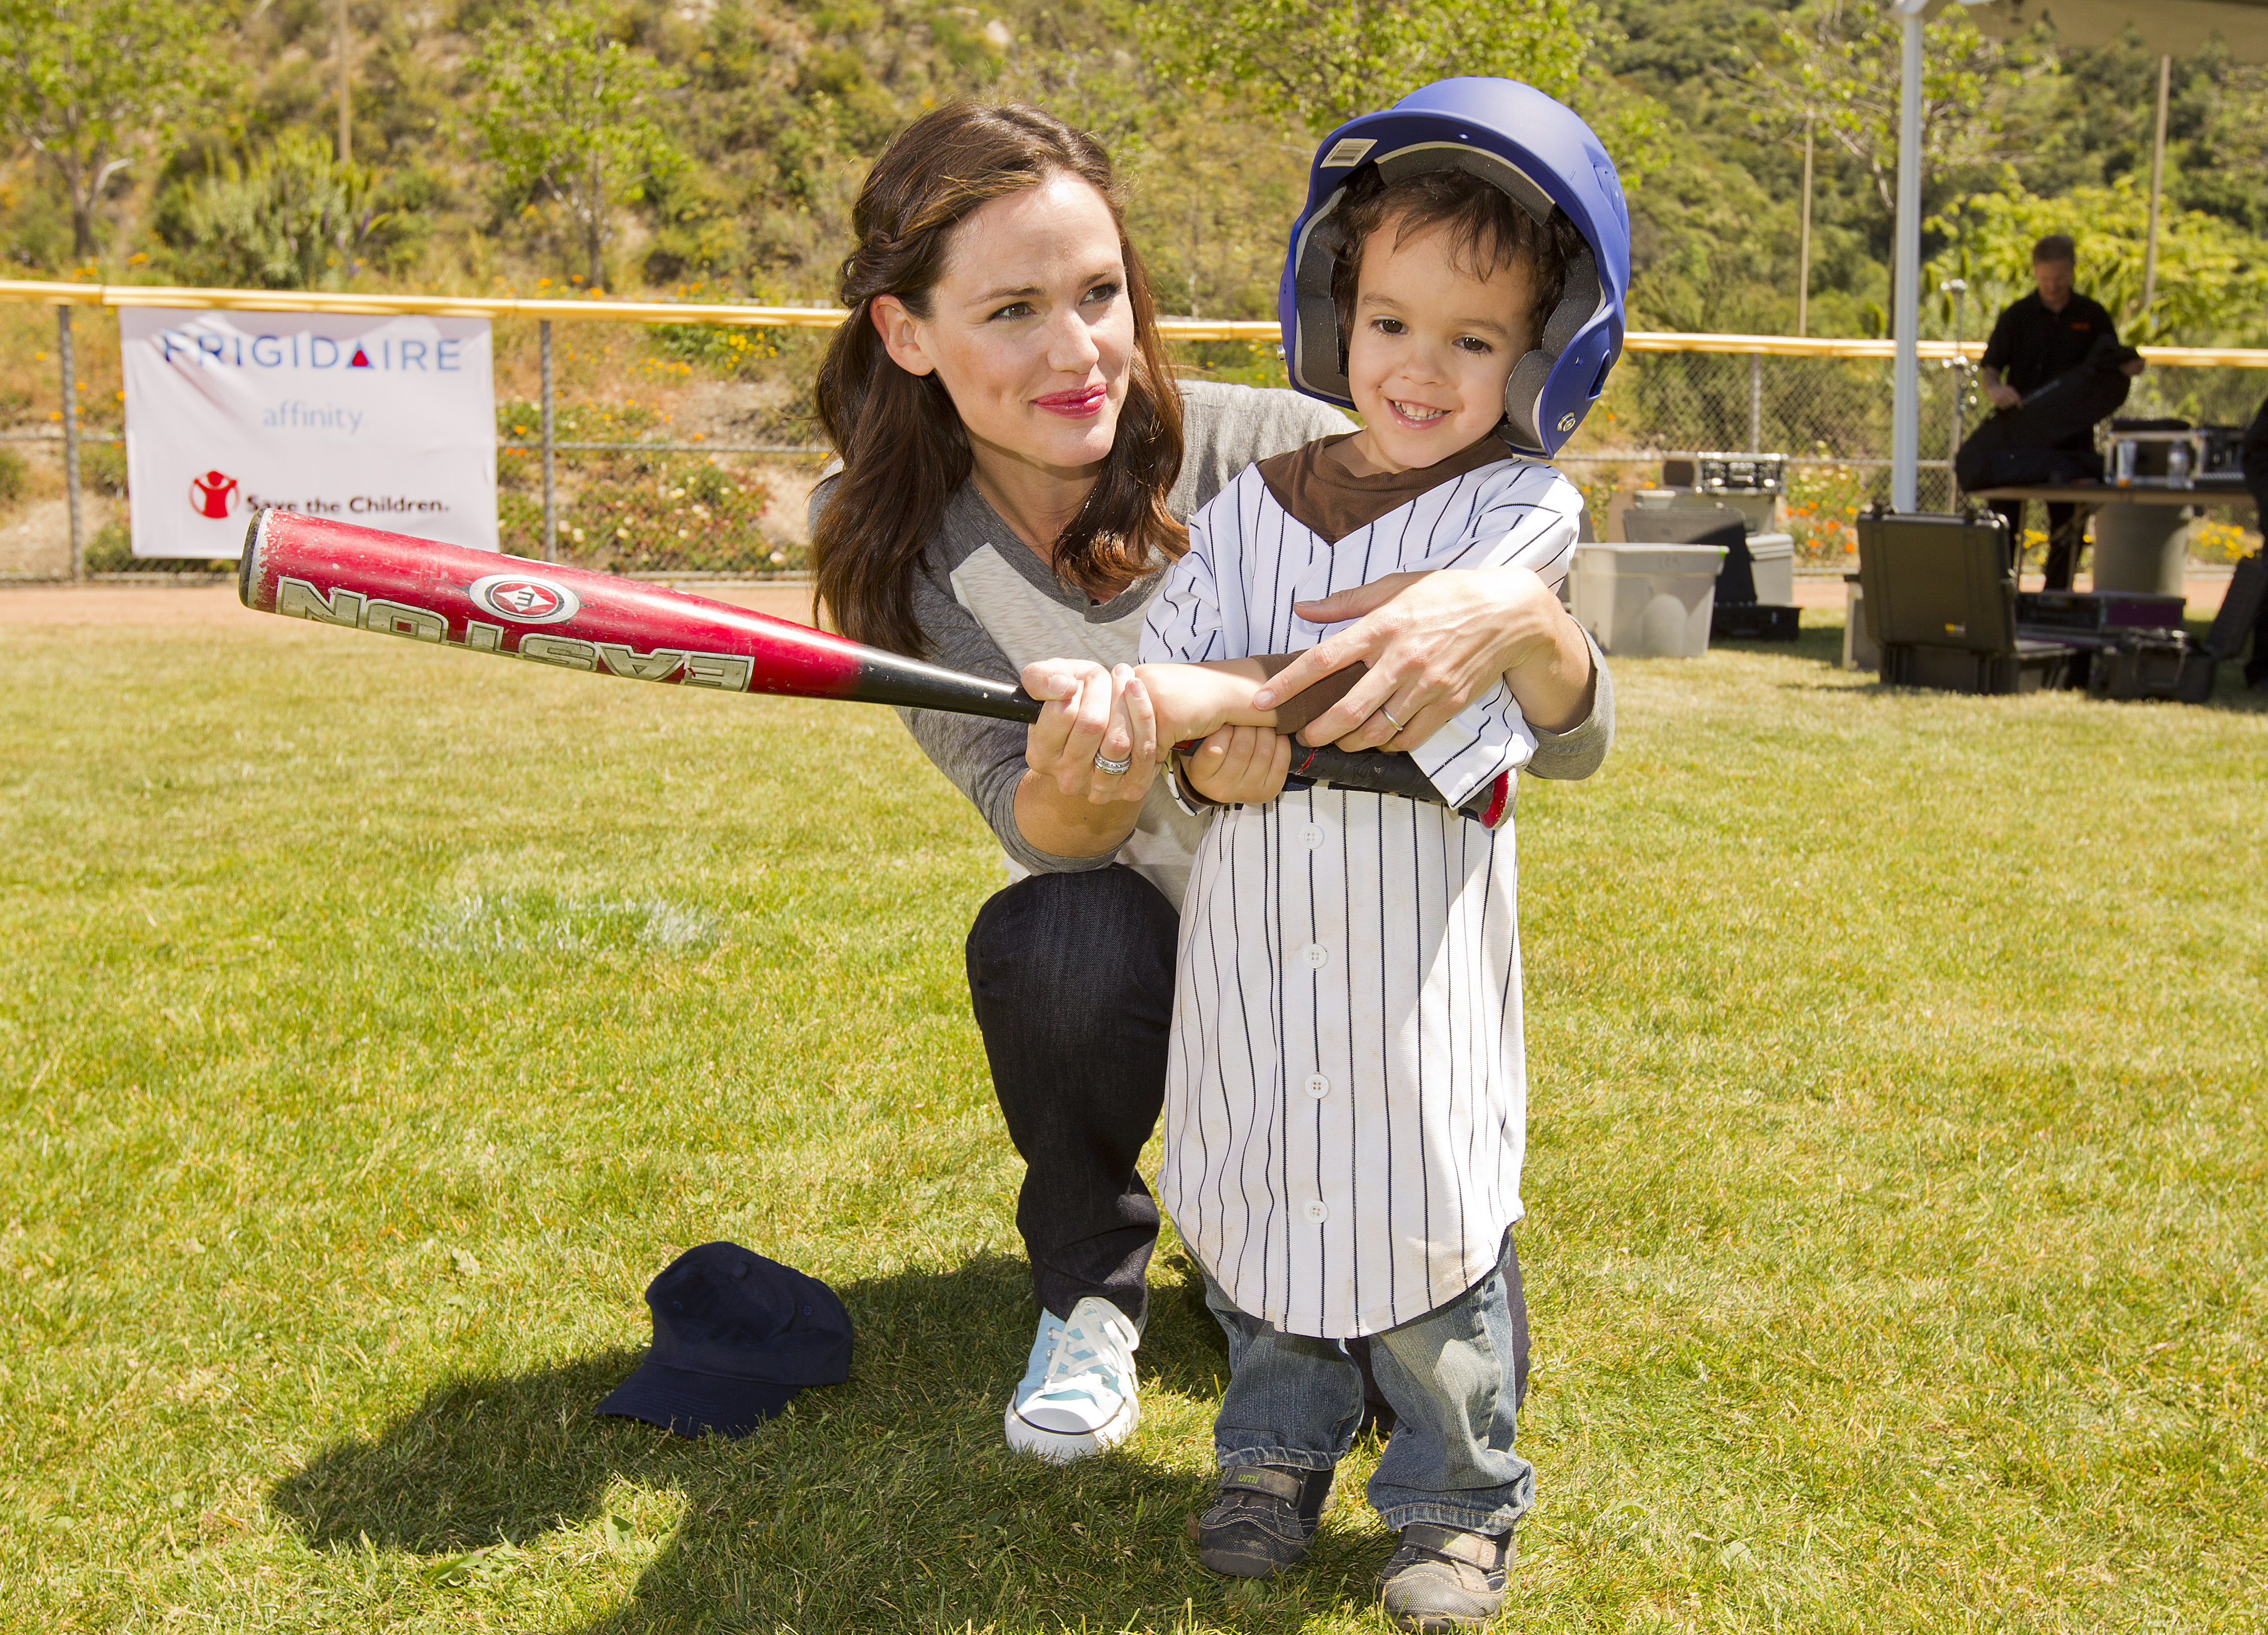 Jennifer Garner Takes the Field For Charity and Makes Royal Wedding Plans